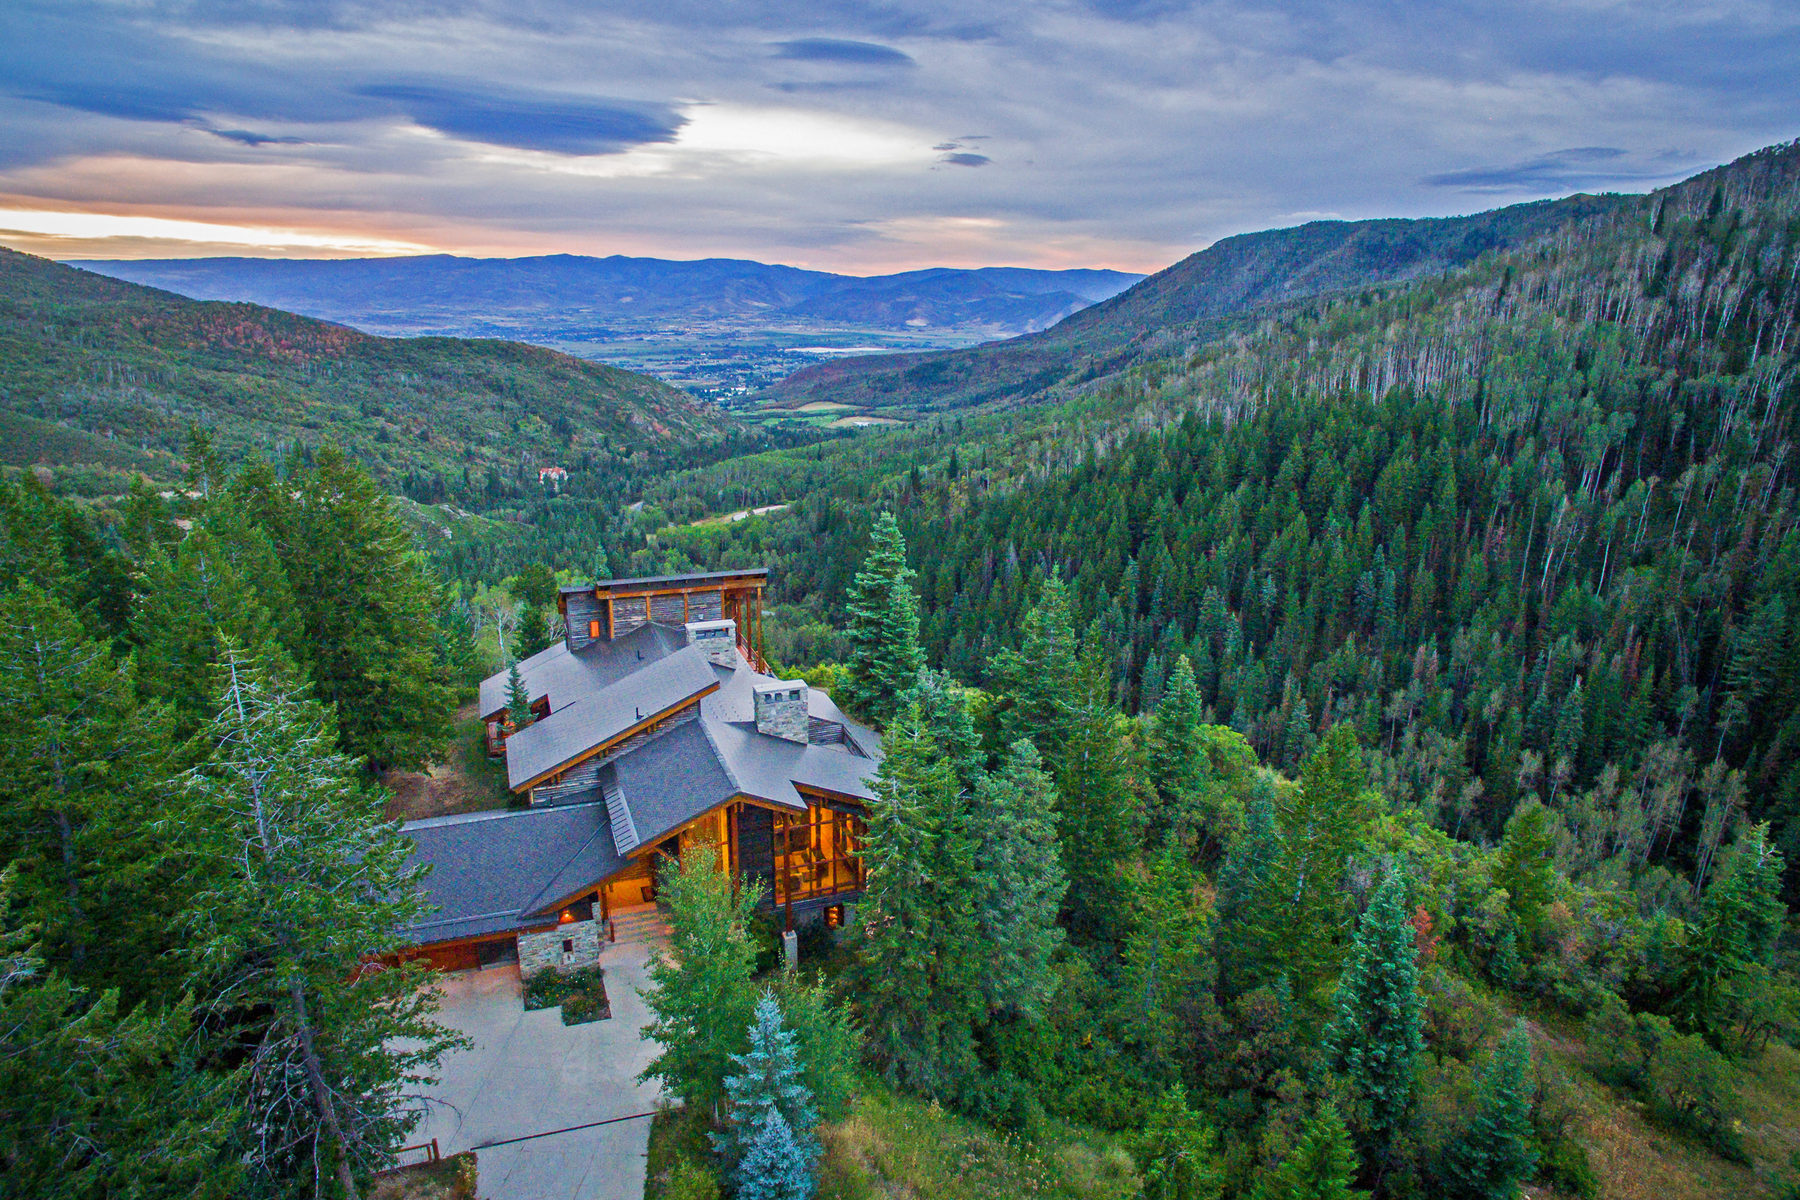 Maison unifamiliale pour l Vente à 331 Acre Estate Surrounded by Forest Land in Snake Creek Canyon 3888 Seymour Rd Midway, Utah, 84049 États-Unis